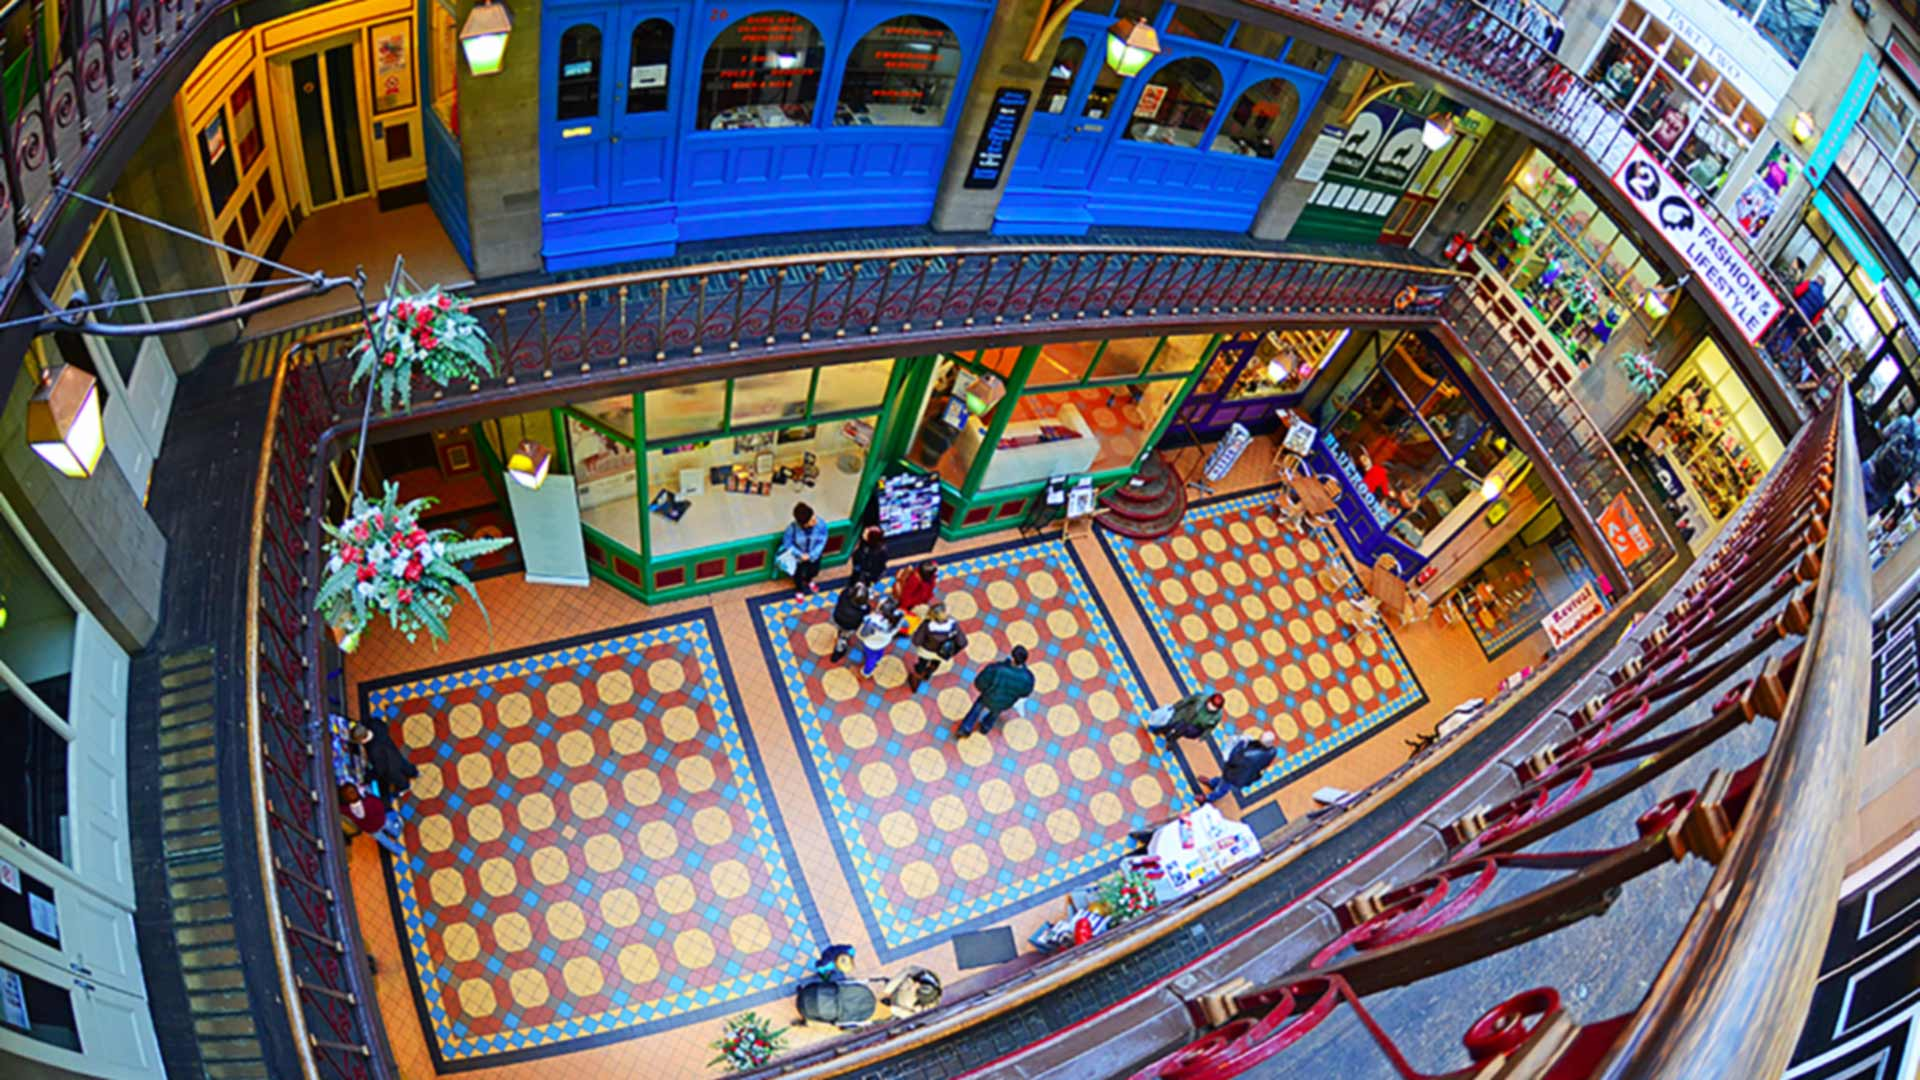 An aerial view of the inside of the Byram Arcade shopping arcade